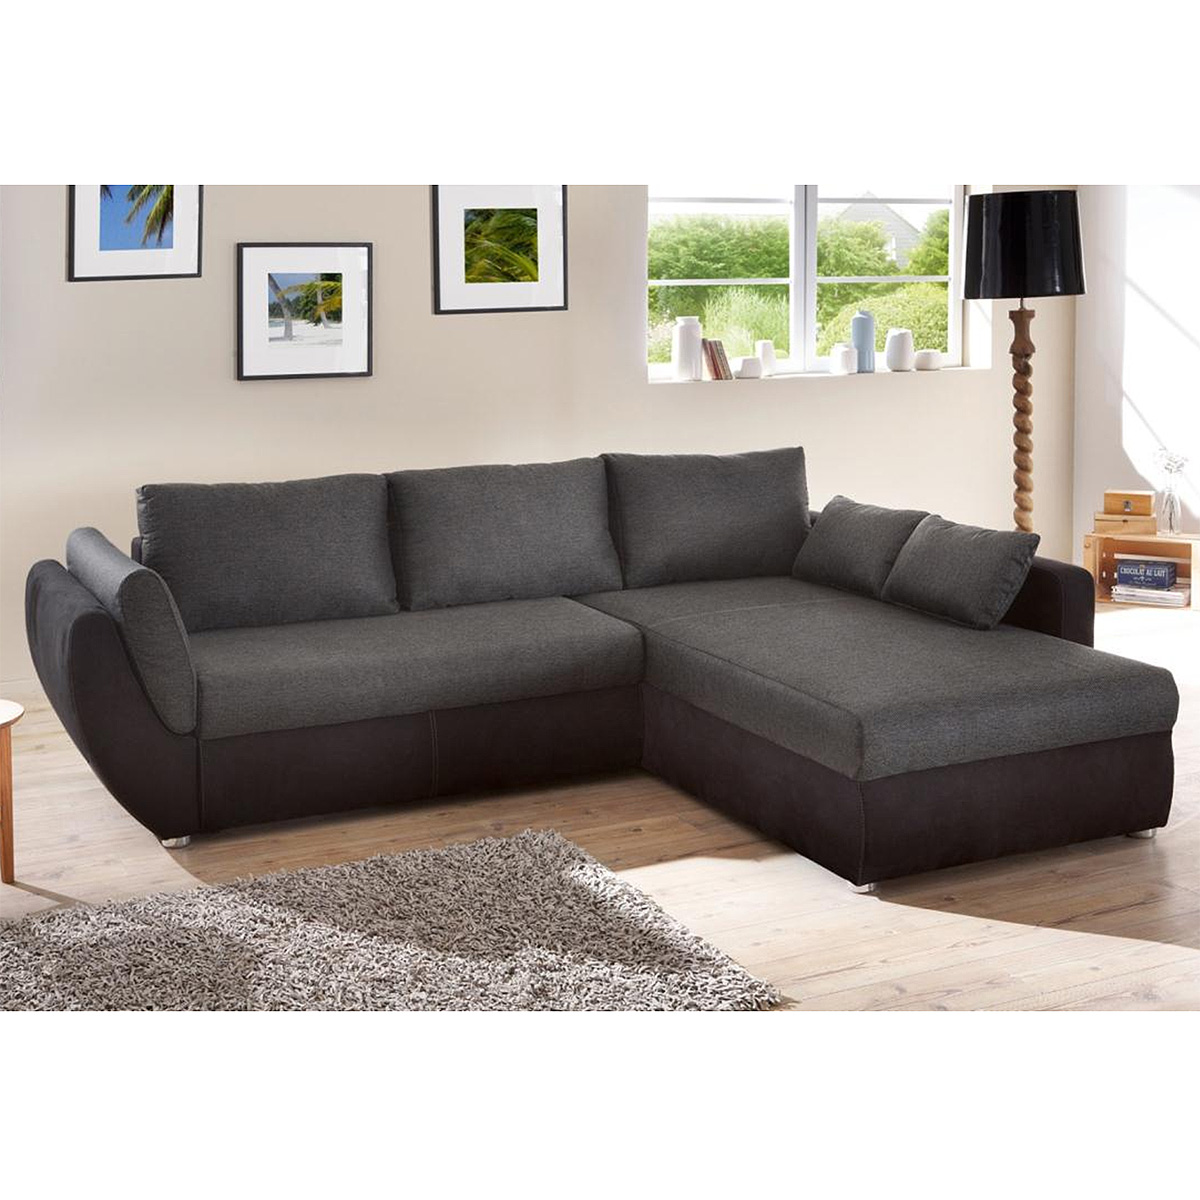 wohnlandschaft taifun sofa ecksofa schwarz grau braun beige bettfunktion auswahl ebay. Black Bedroom Furniture Sets. Home Design Ideas